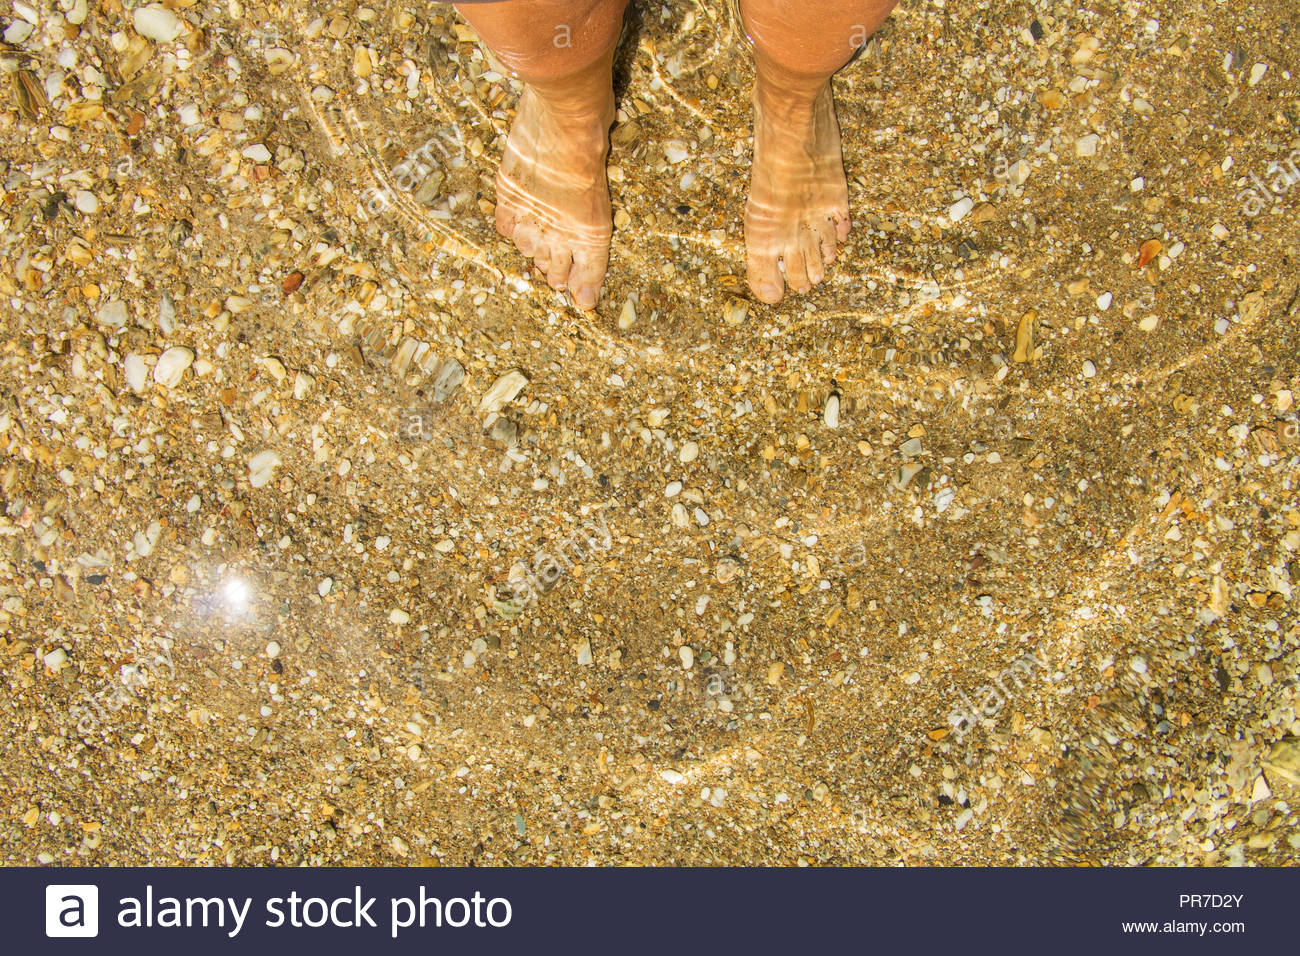 Woman's feet in Water, Feet in clear water at sandy beach on Porquerolles France, bare feet sea, barefeet, bare feet at sandy beach bare feet sea - Stock Image